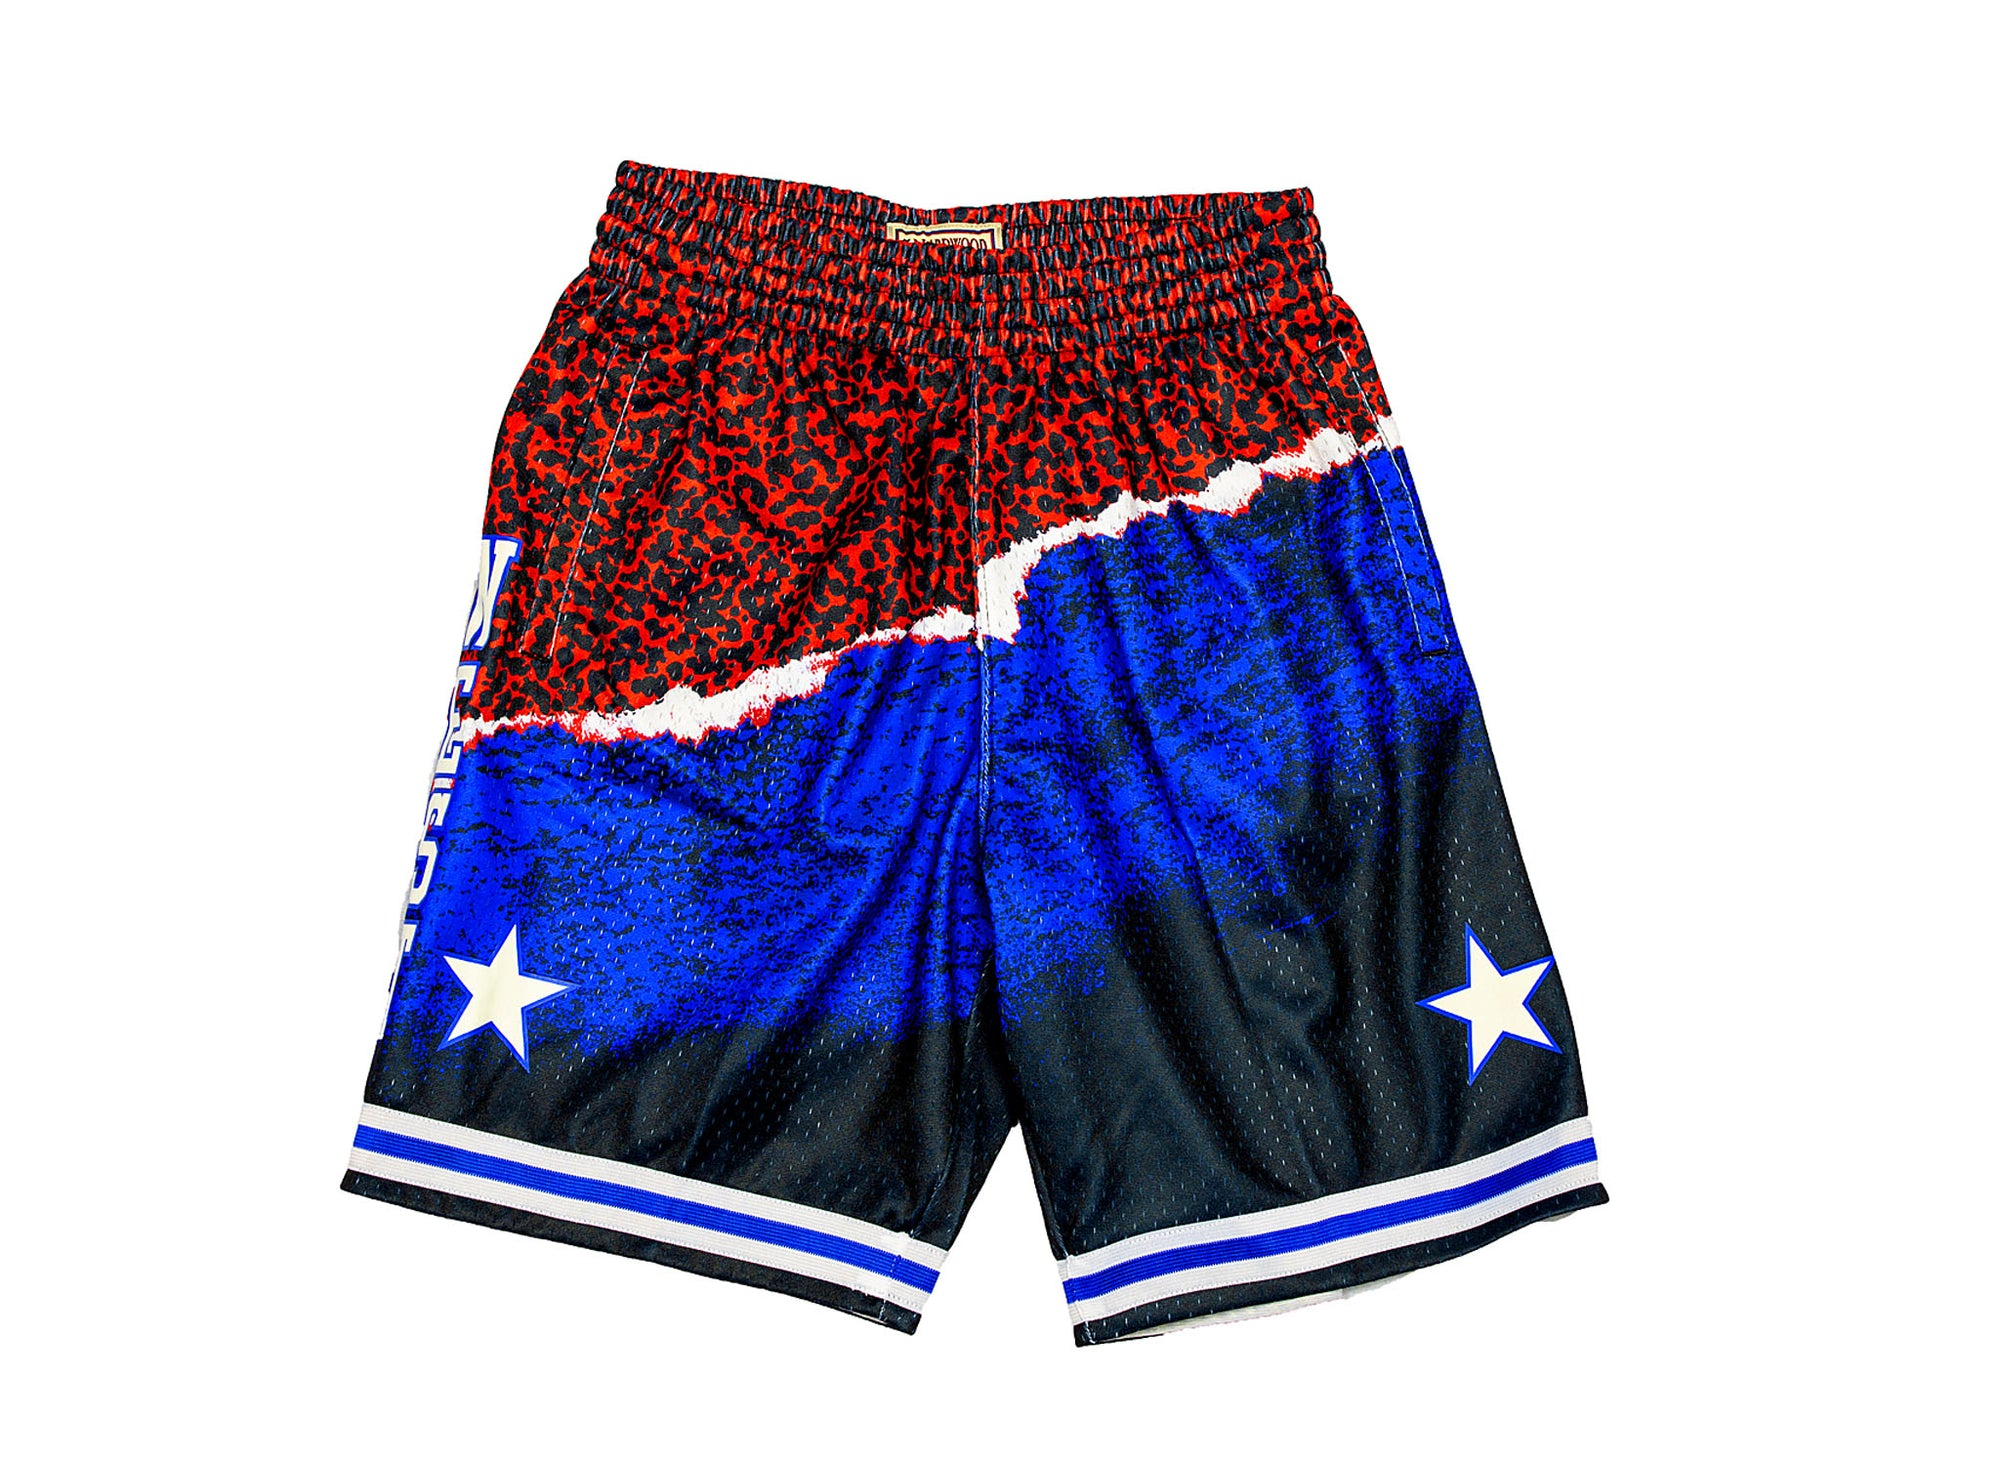 MITCHELL & NESS NBA SUBLIMATED SHORTS ALL STAR WEST 03